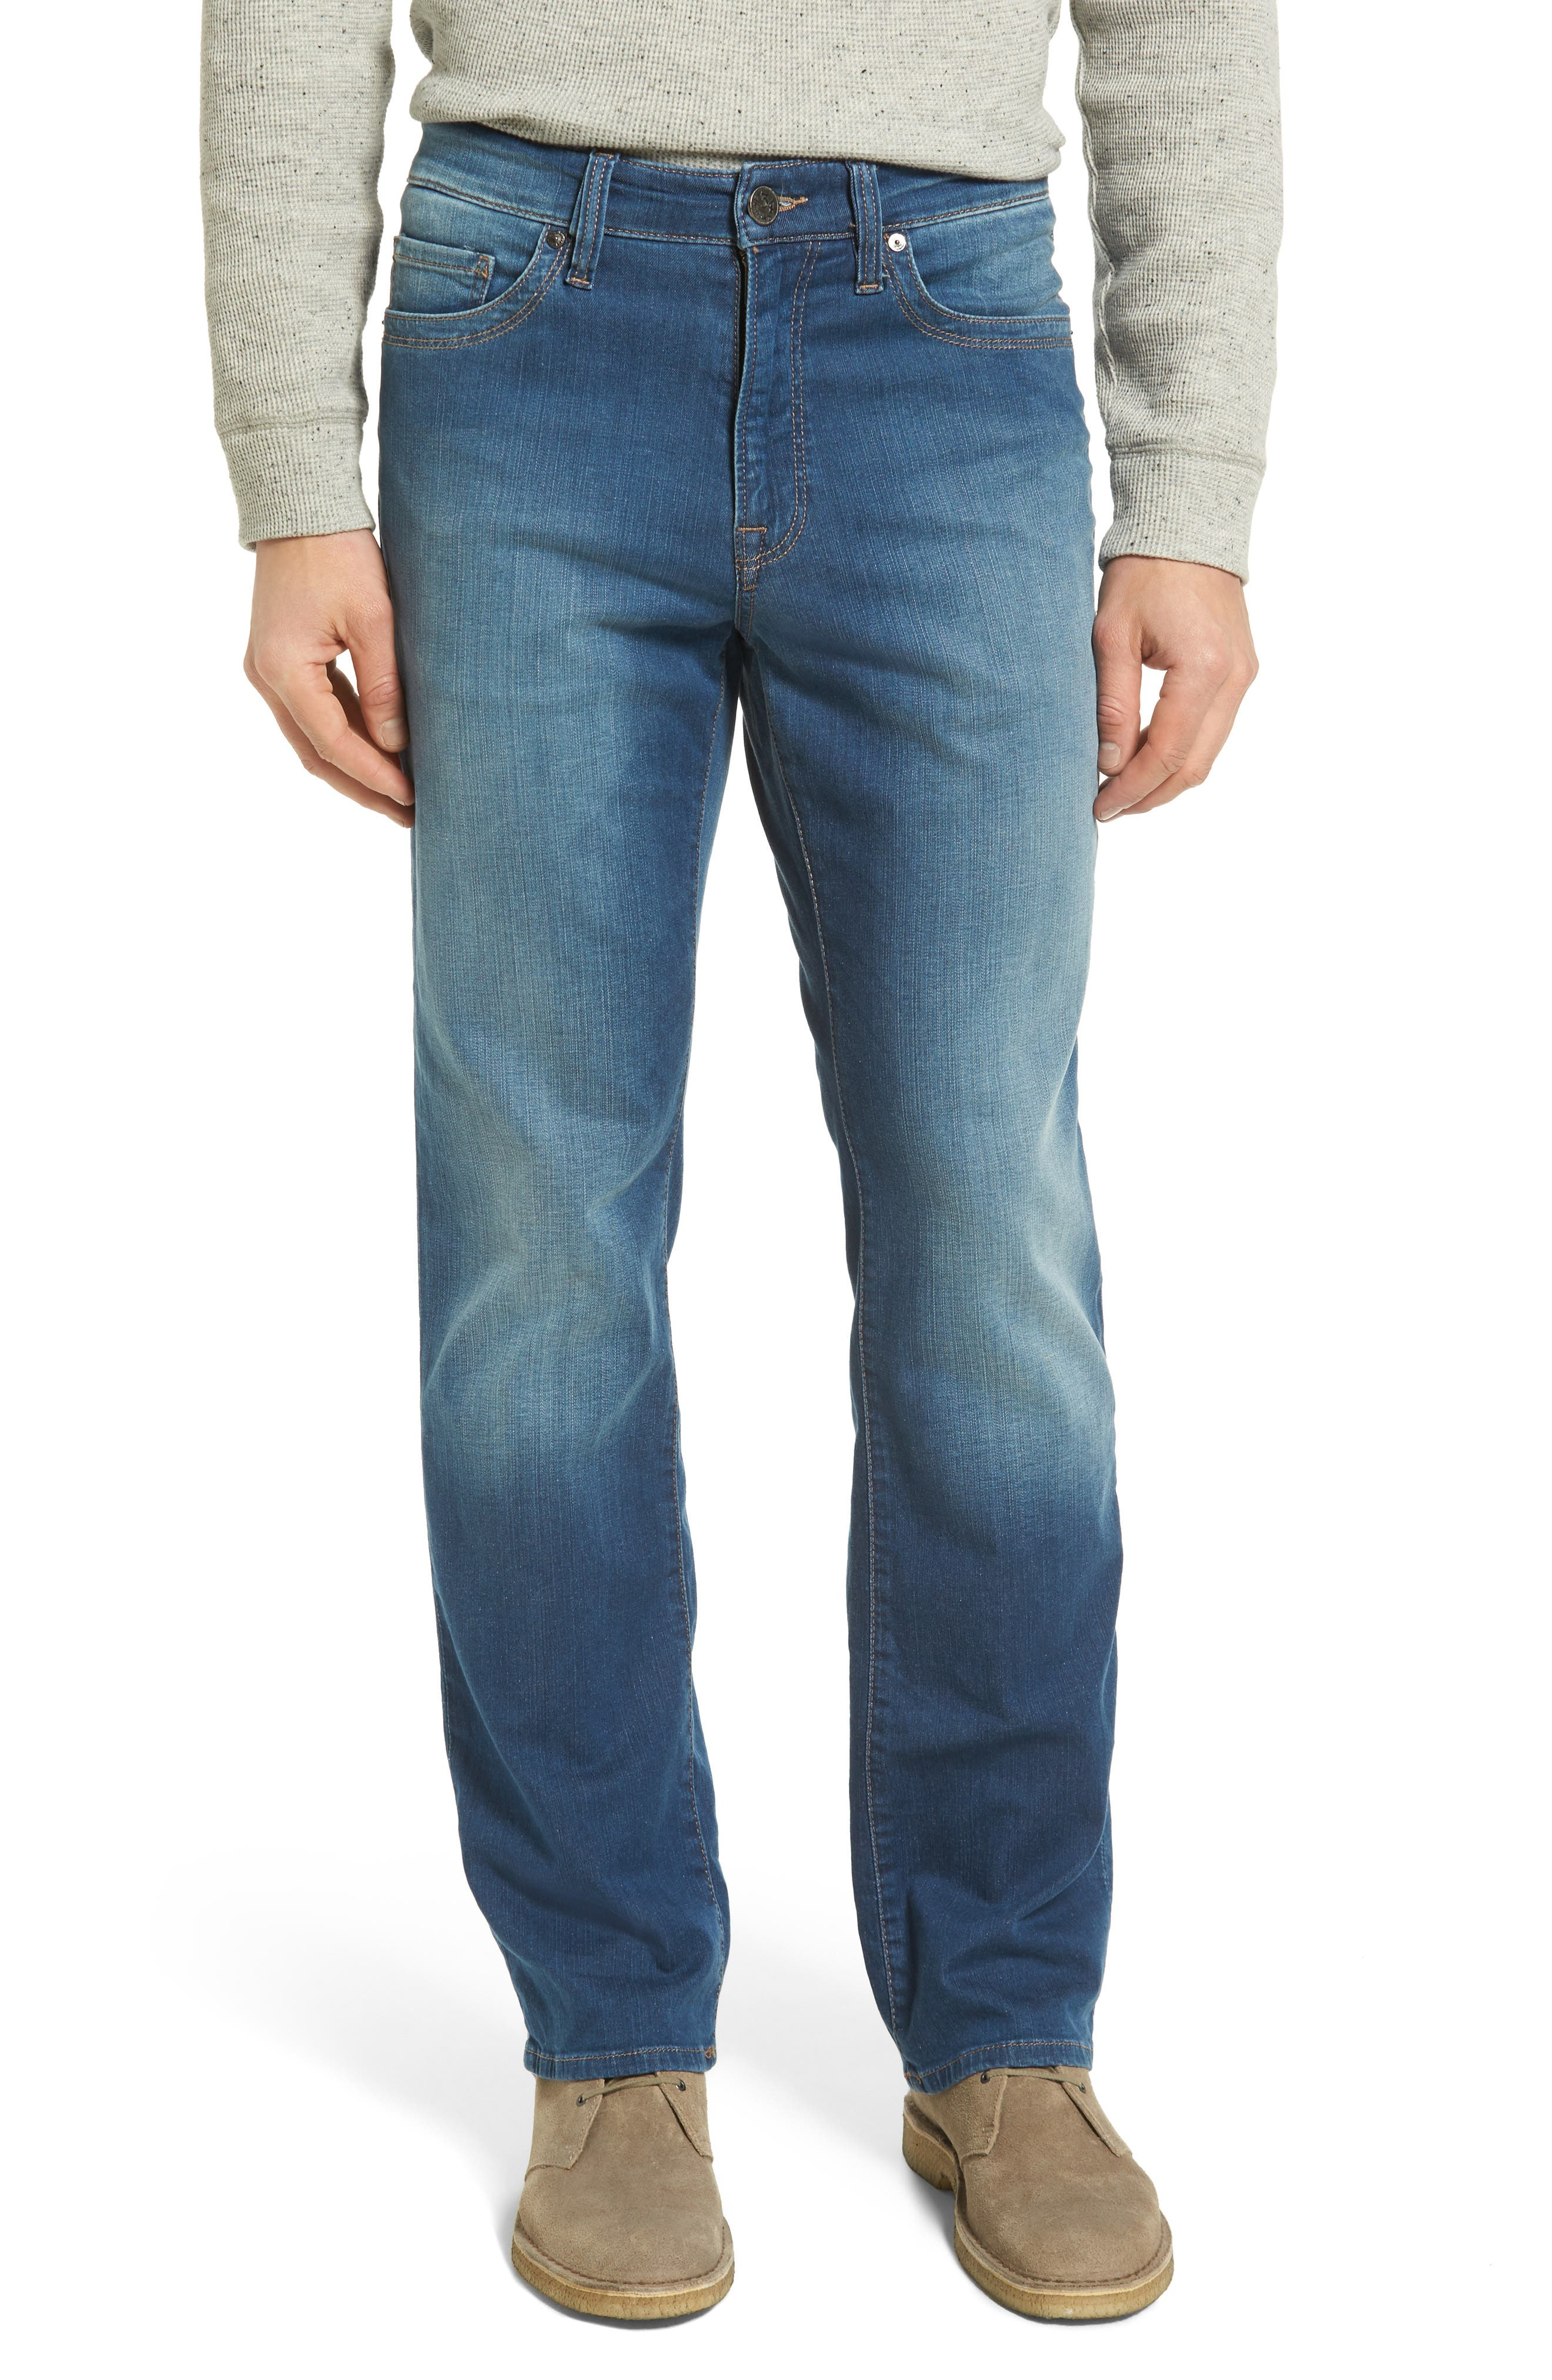 Alternate Image 1 Selected - 34 Heritage 'Charisma' Classic Relaxed Fit Jeans (Mid Cashmere) (Online Only) (Regular & Tall)